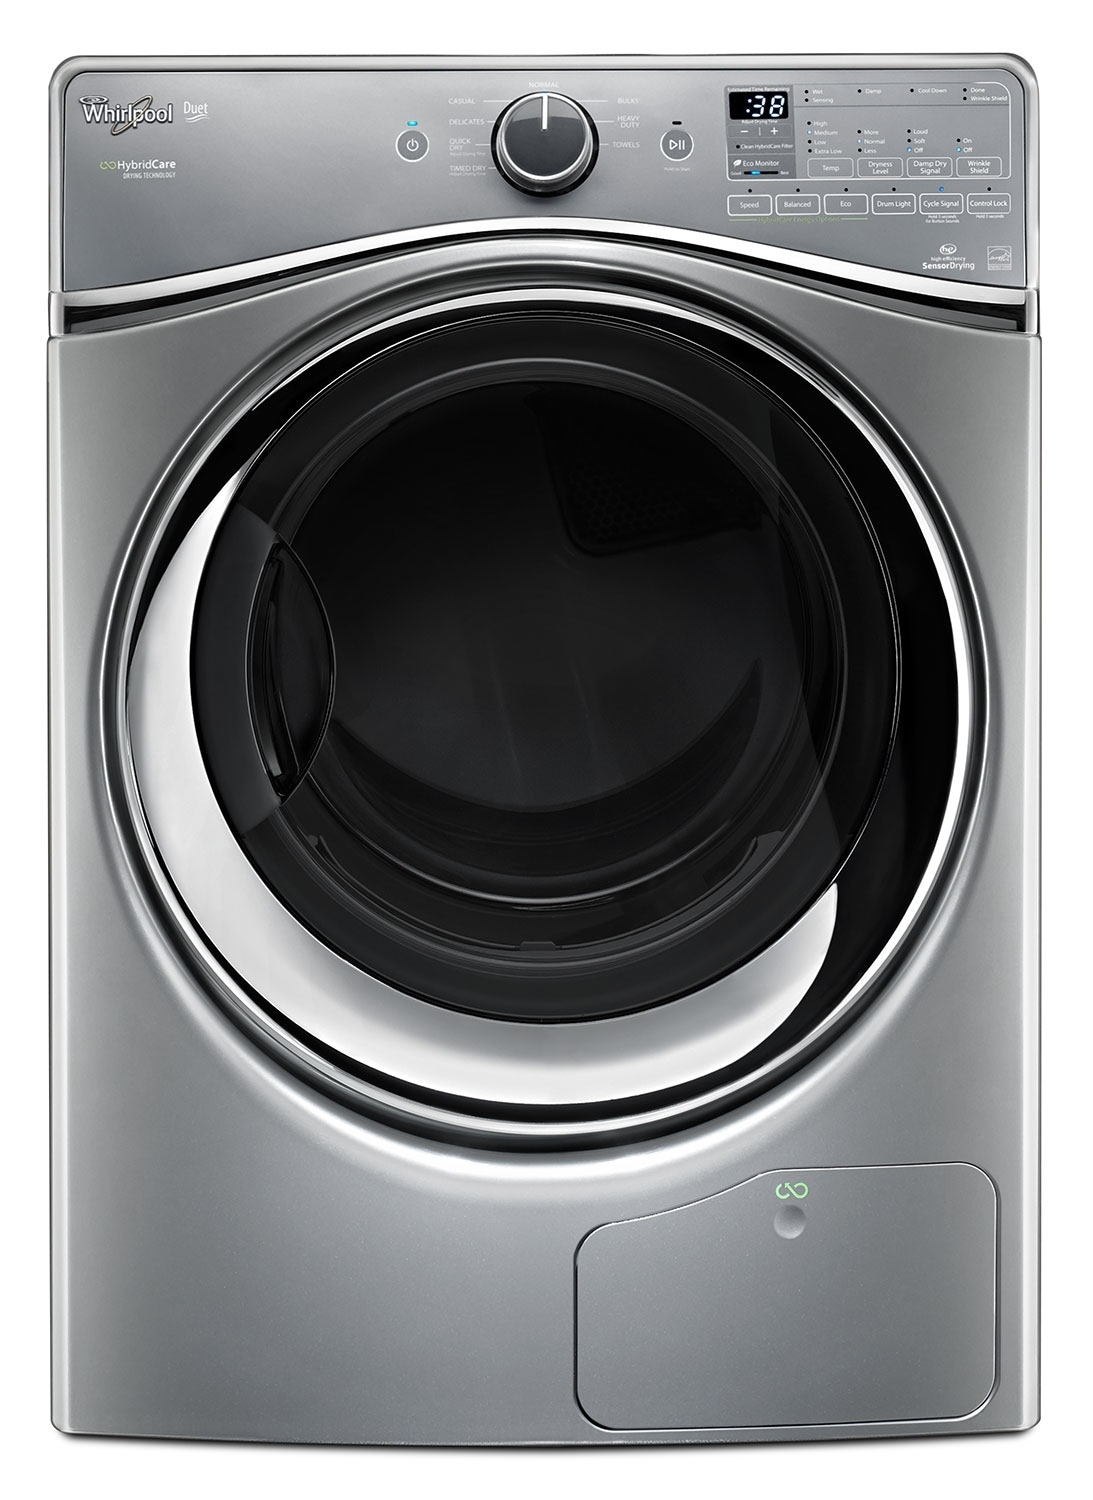 Whirlpool Chrome Shadow Electric Dryer (7.3 Cu. Ft.) - YWED99HEDC